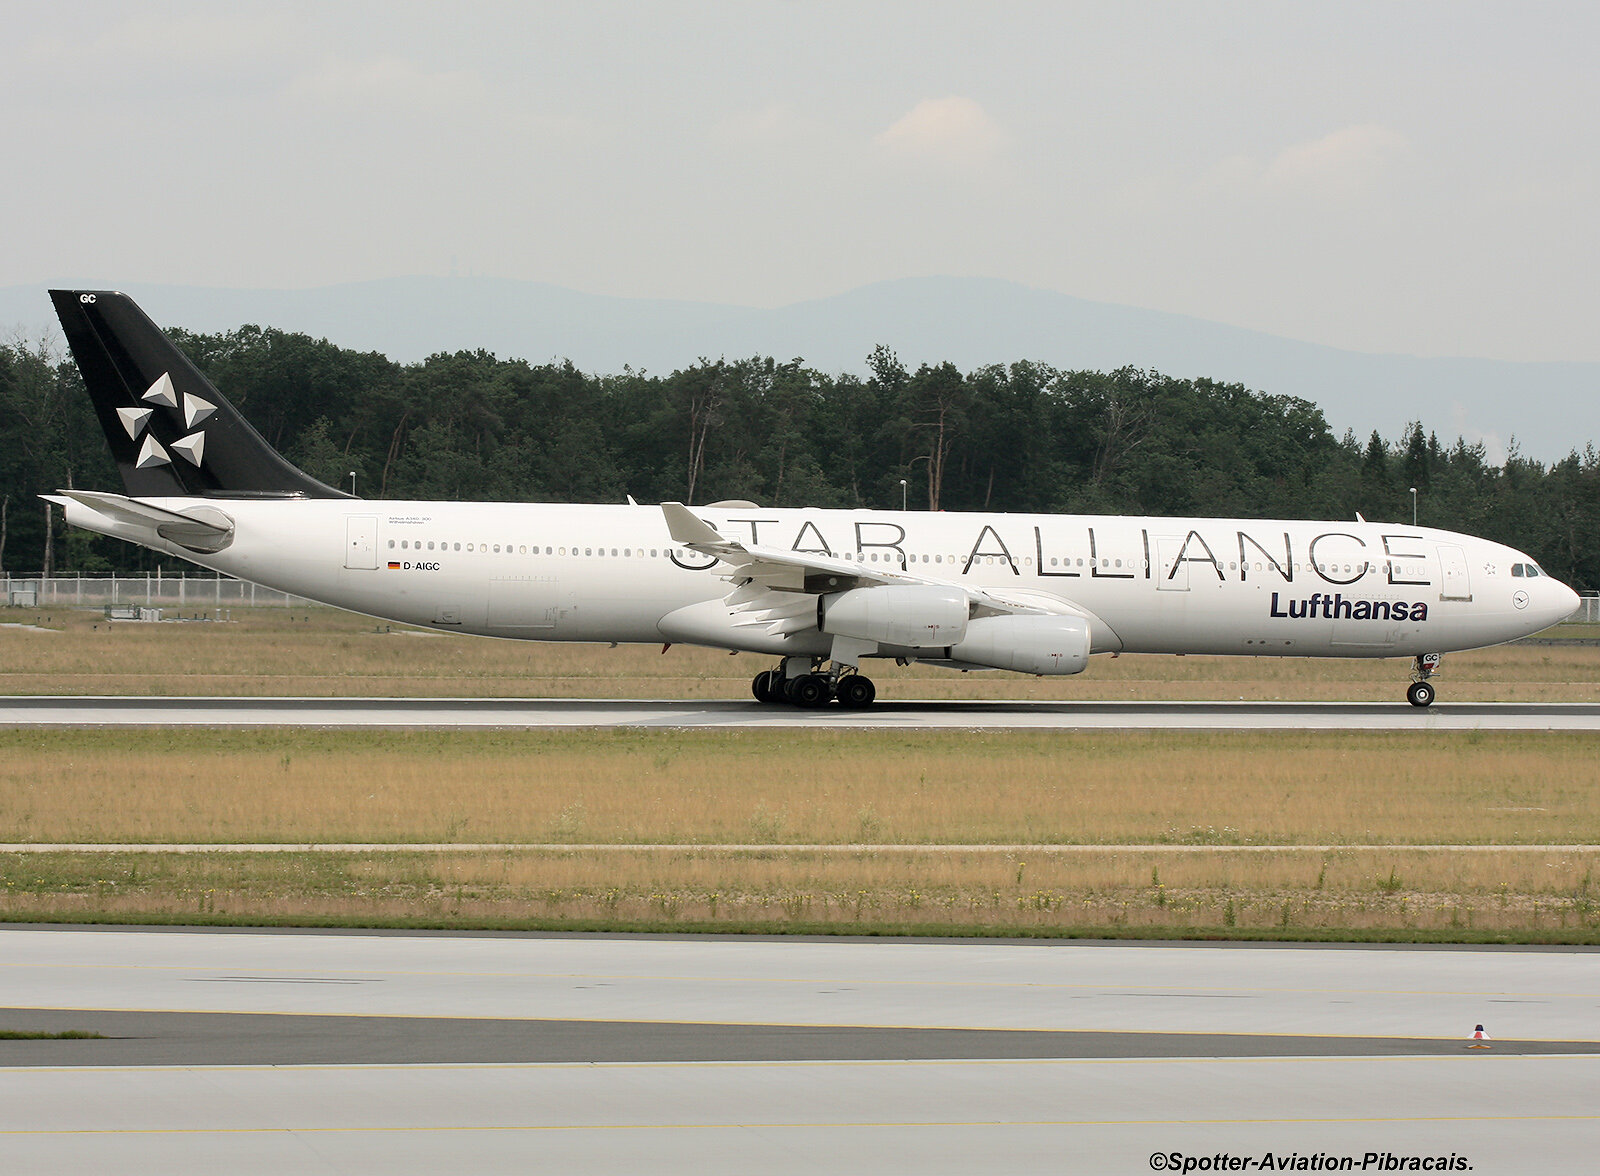 Star Alliance (Lufthansa)